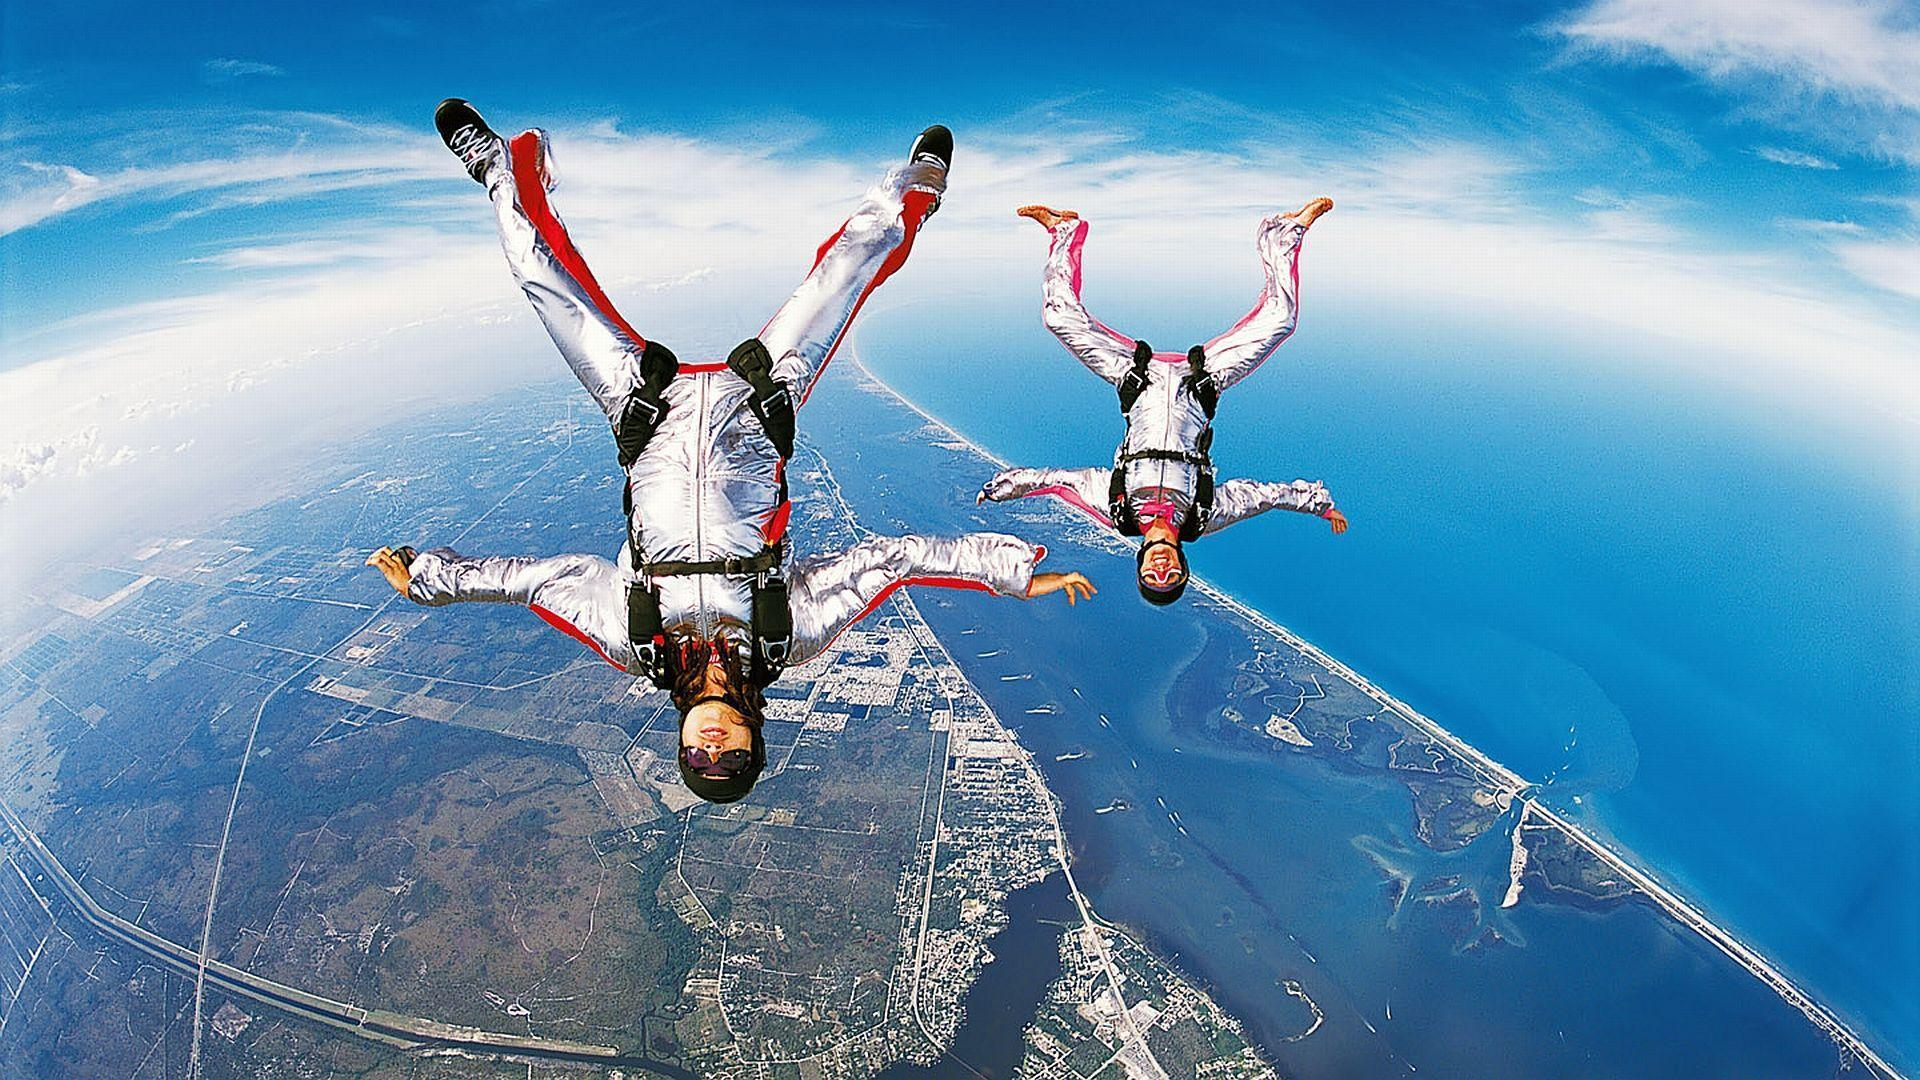 In Gallery: 41 Skydiving HD Wallpapers | Backgrounds, BsnSCB.com